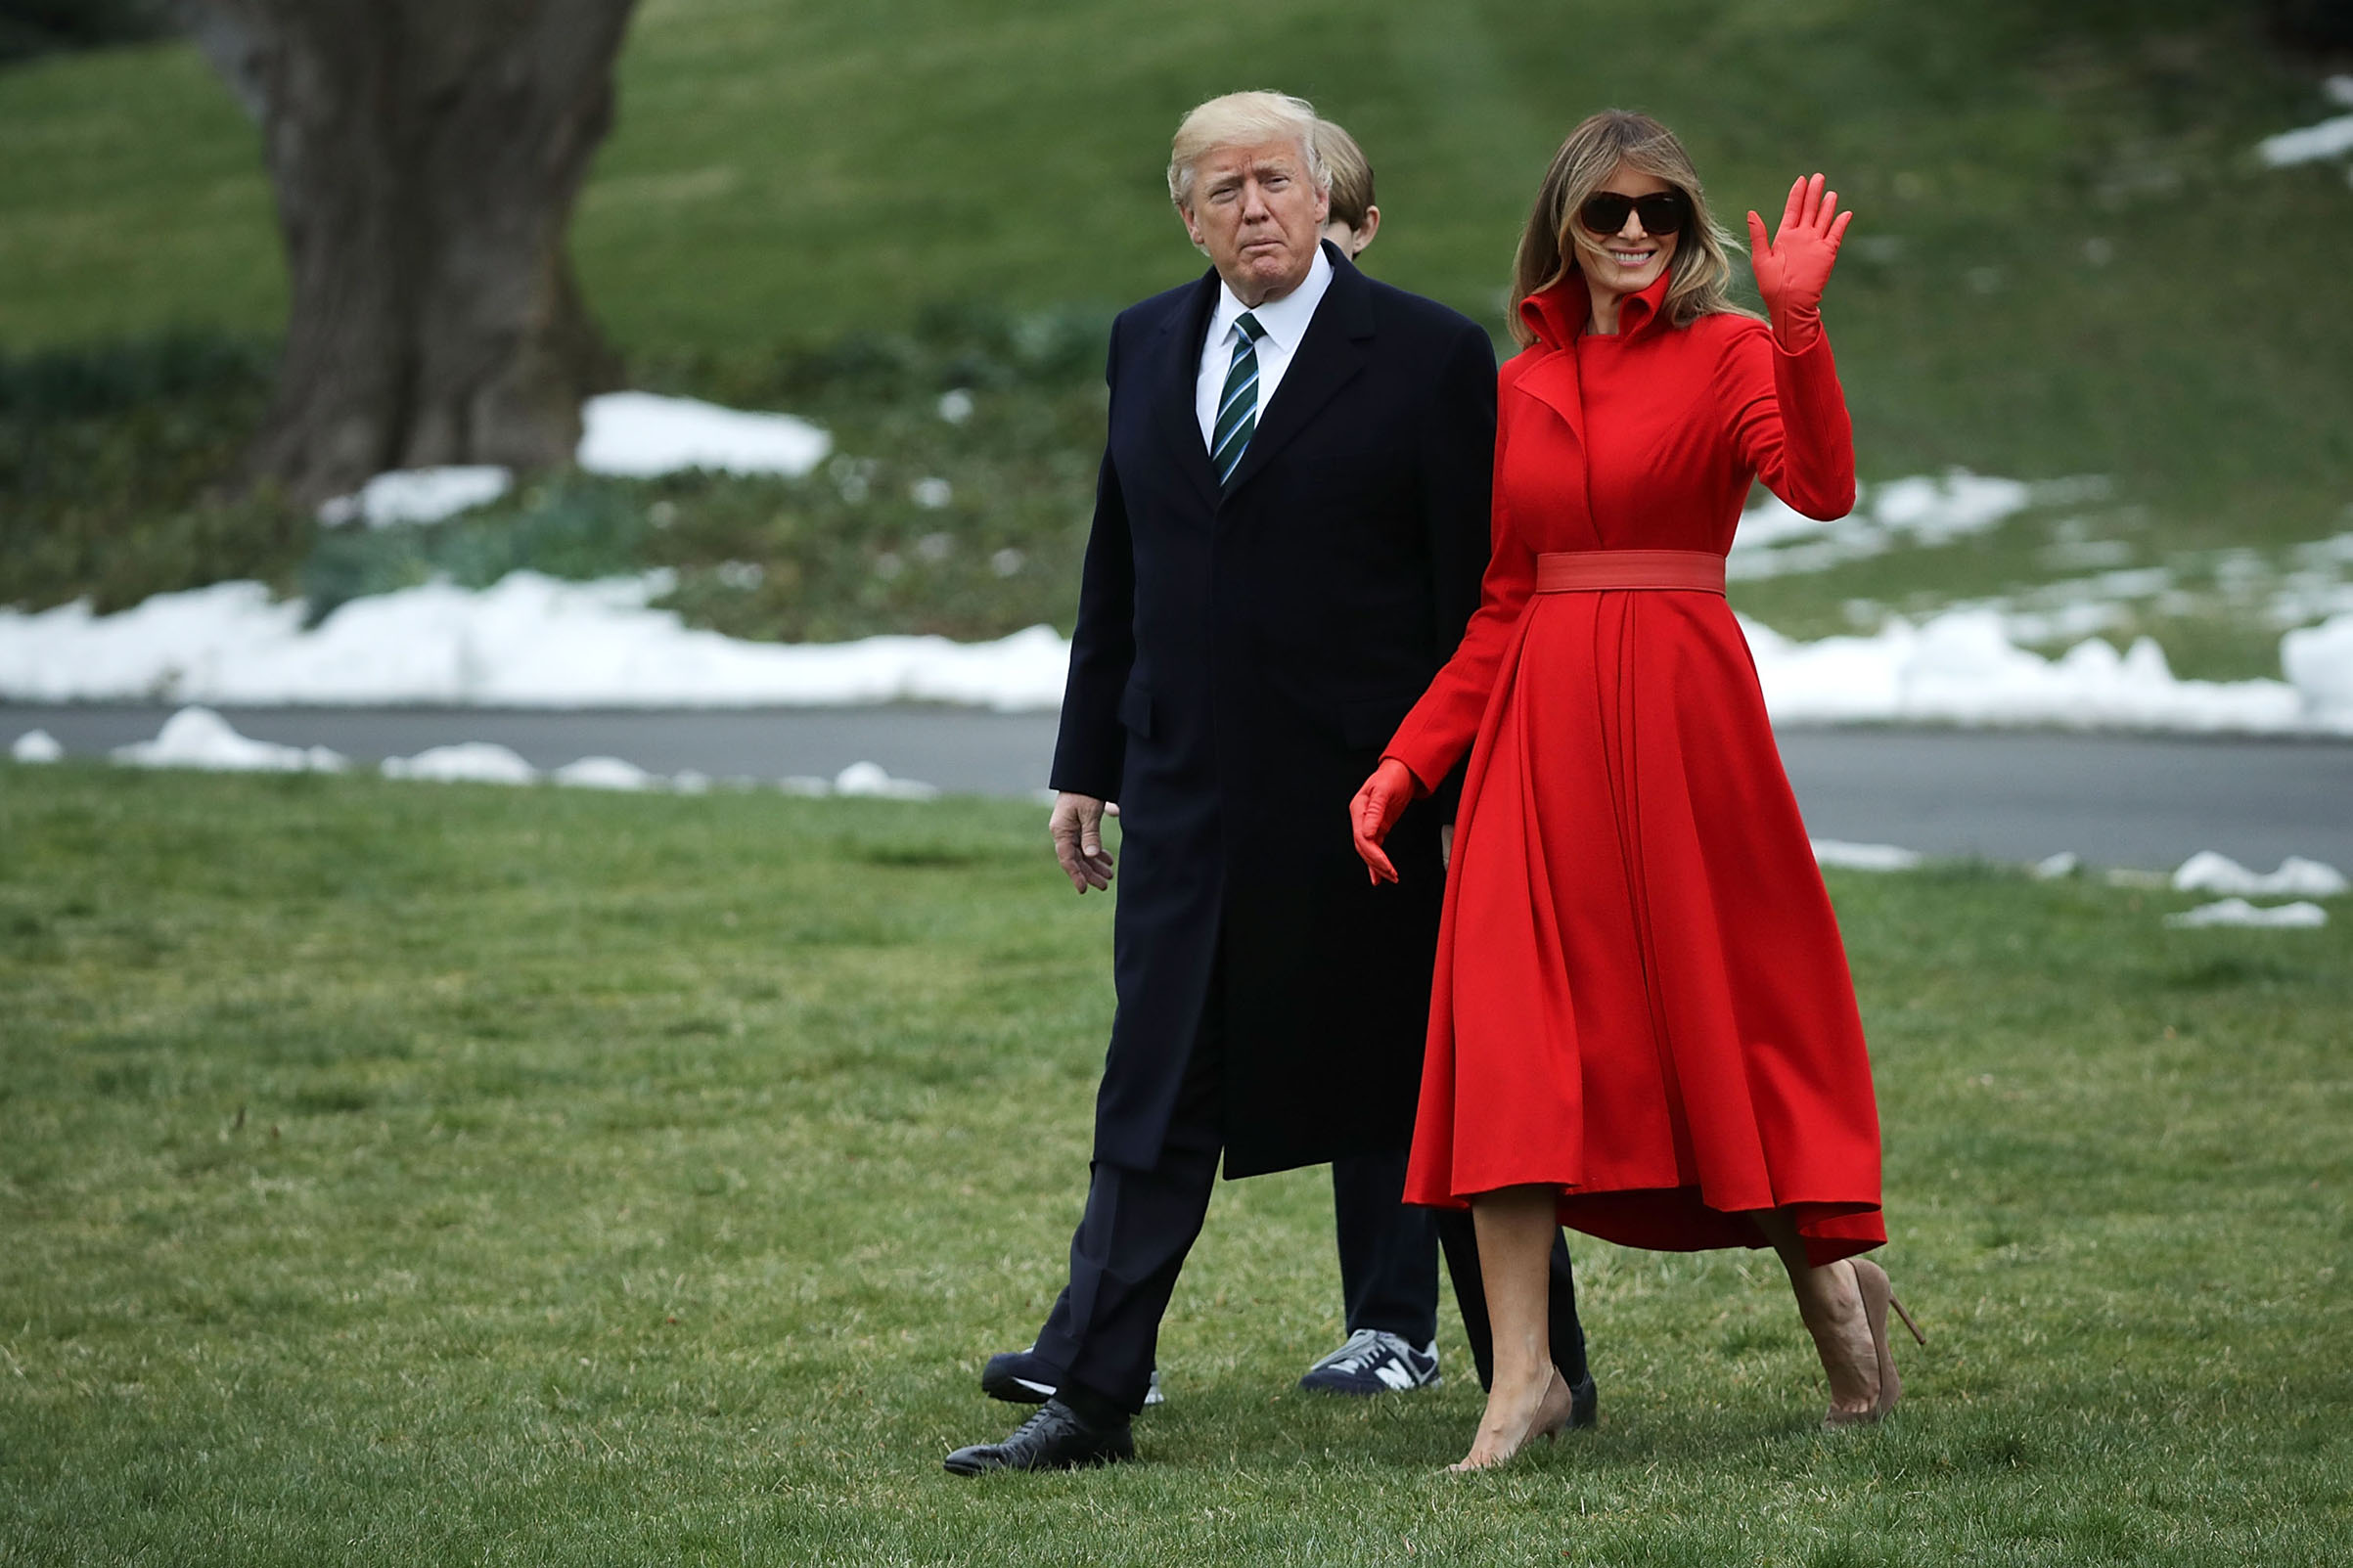 President Donald Trump, first lady Melania Trump wearing a custom made coatdress by designer Alice Roi,  and their son Barron Trump depart the White House, March 17, 2017.